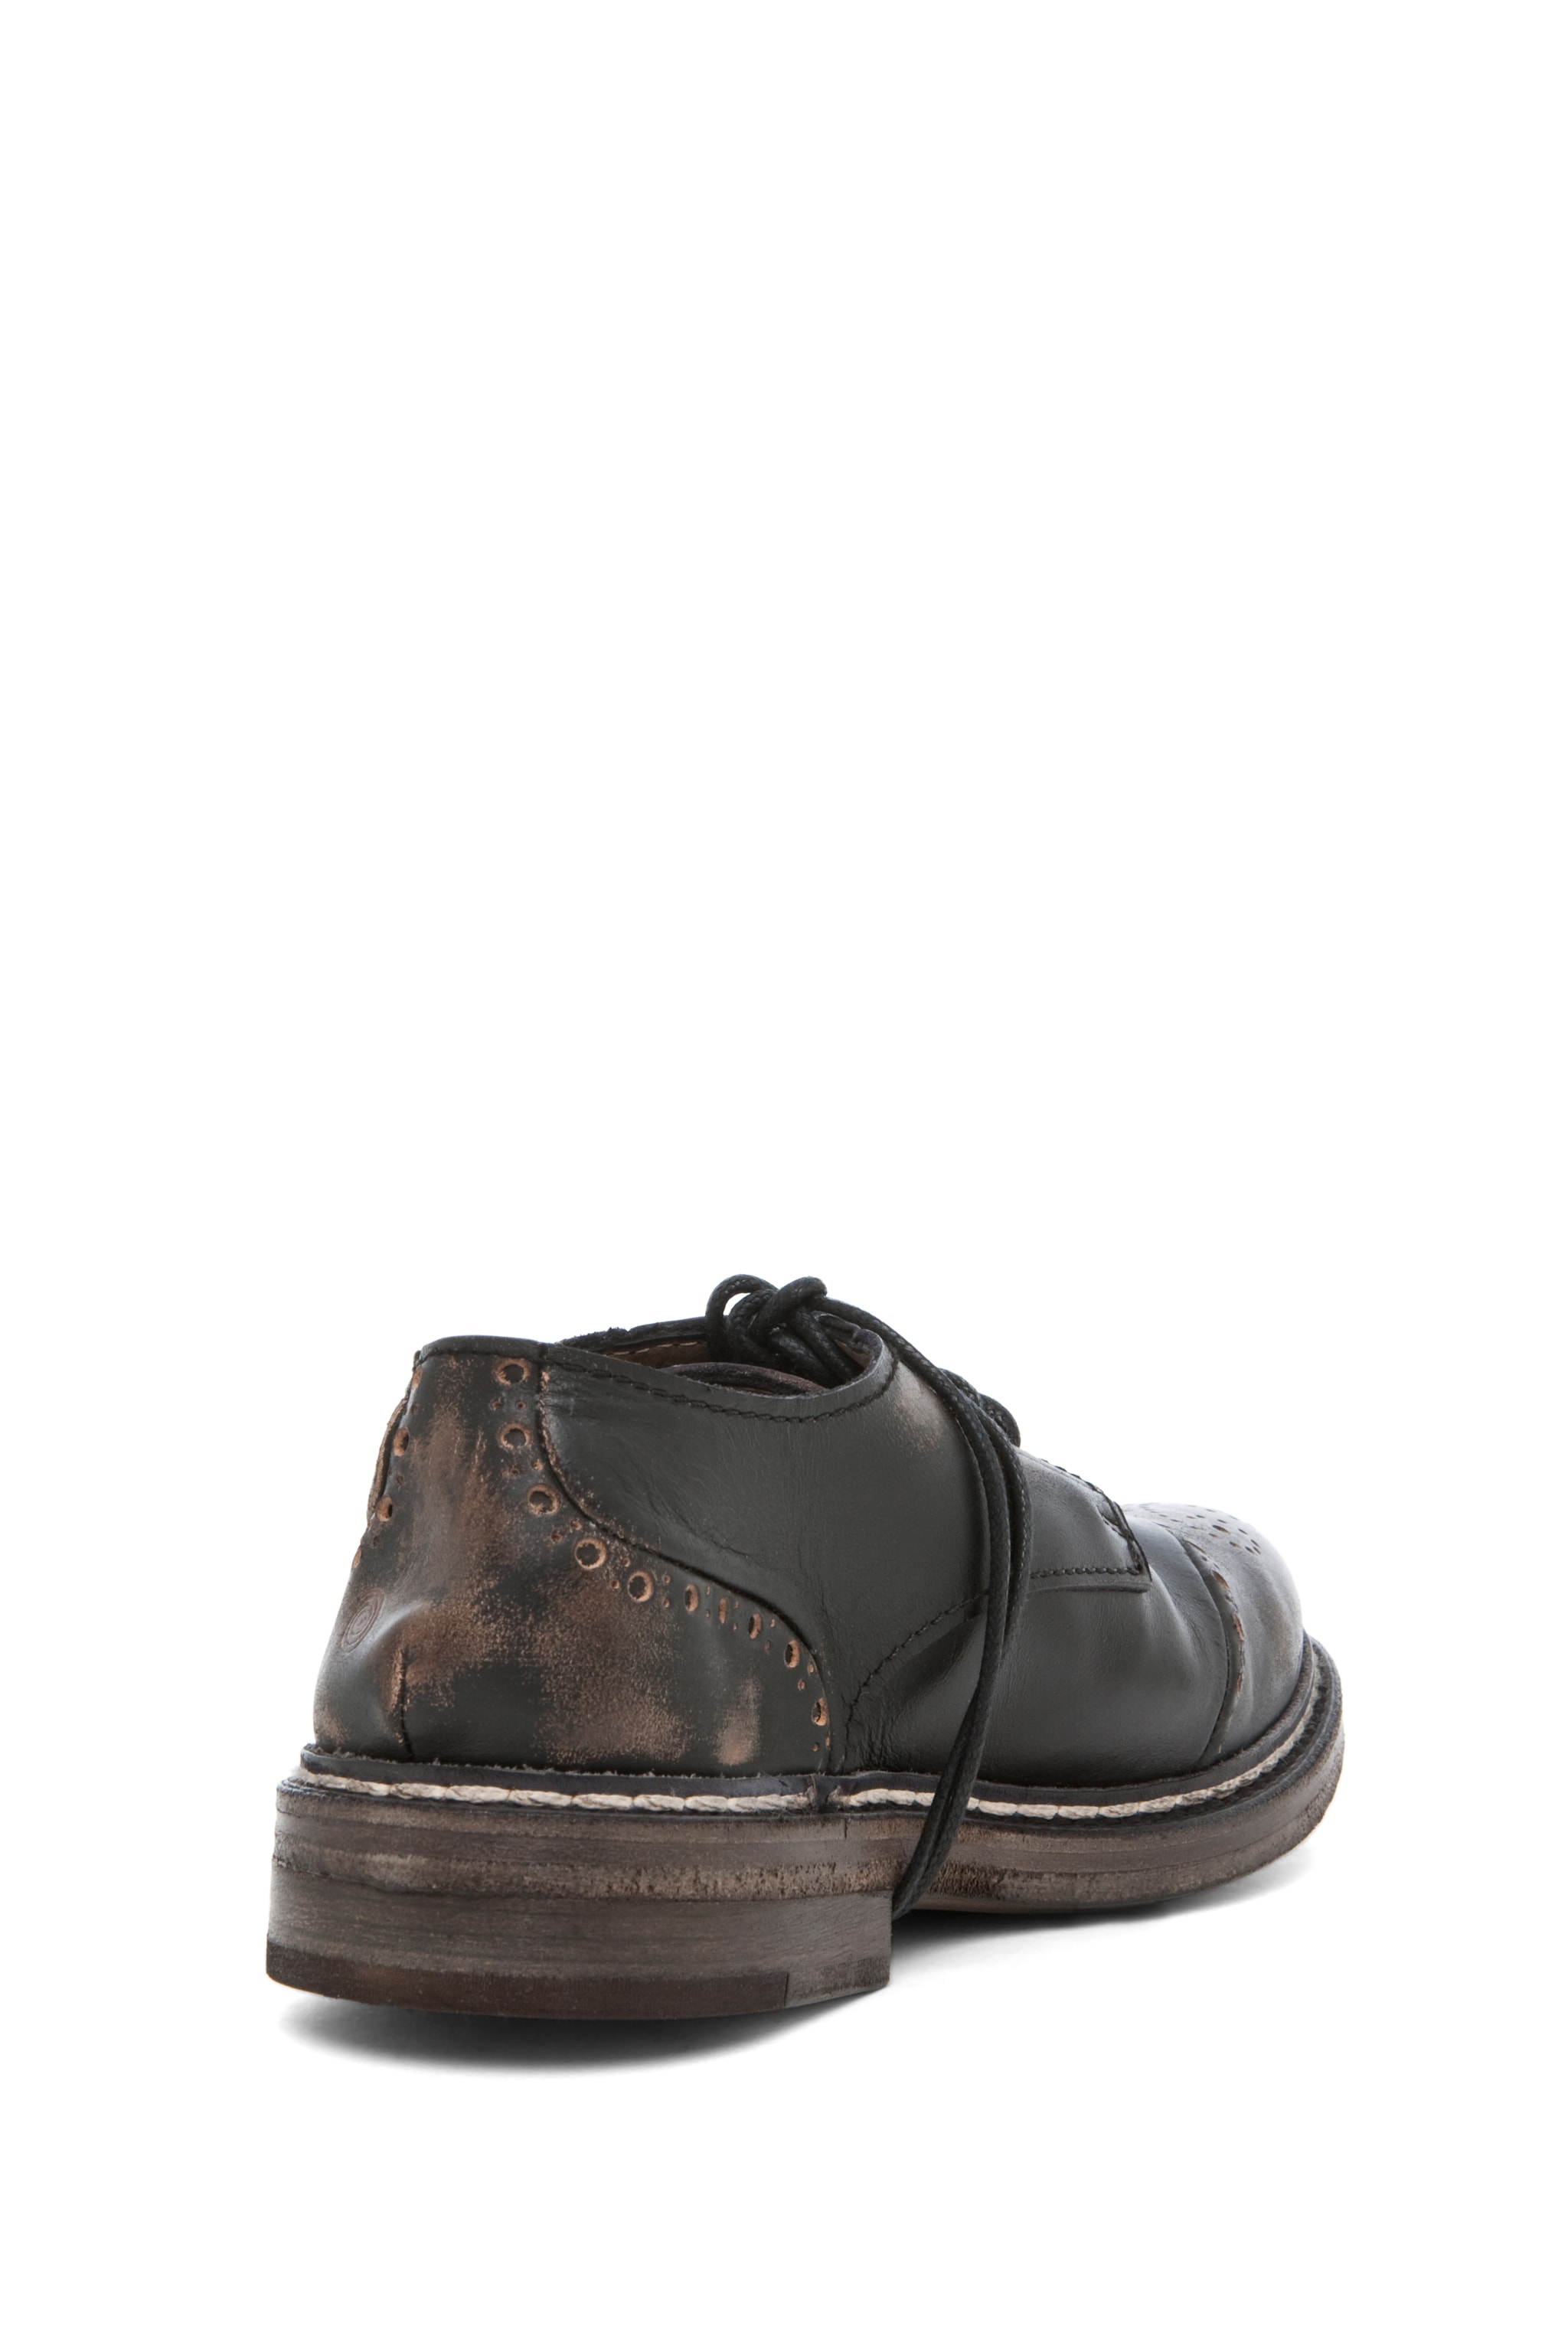 Image 3 of Marsell Gru Oxford in Black